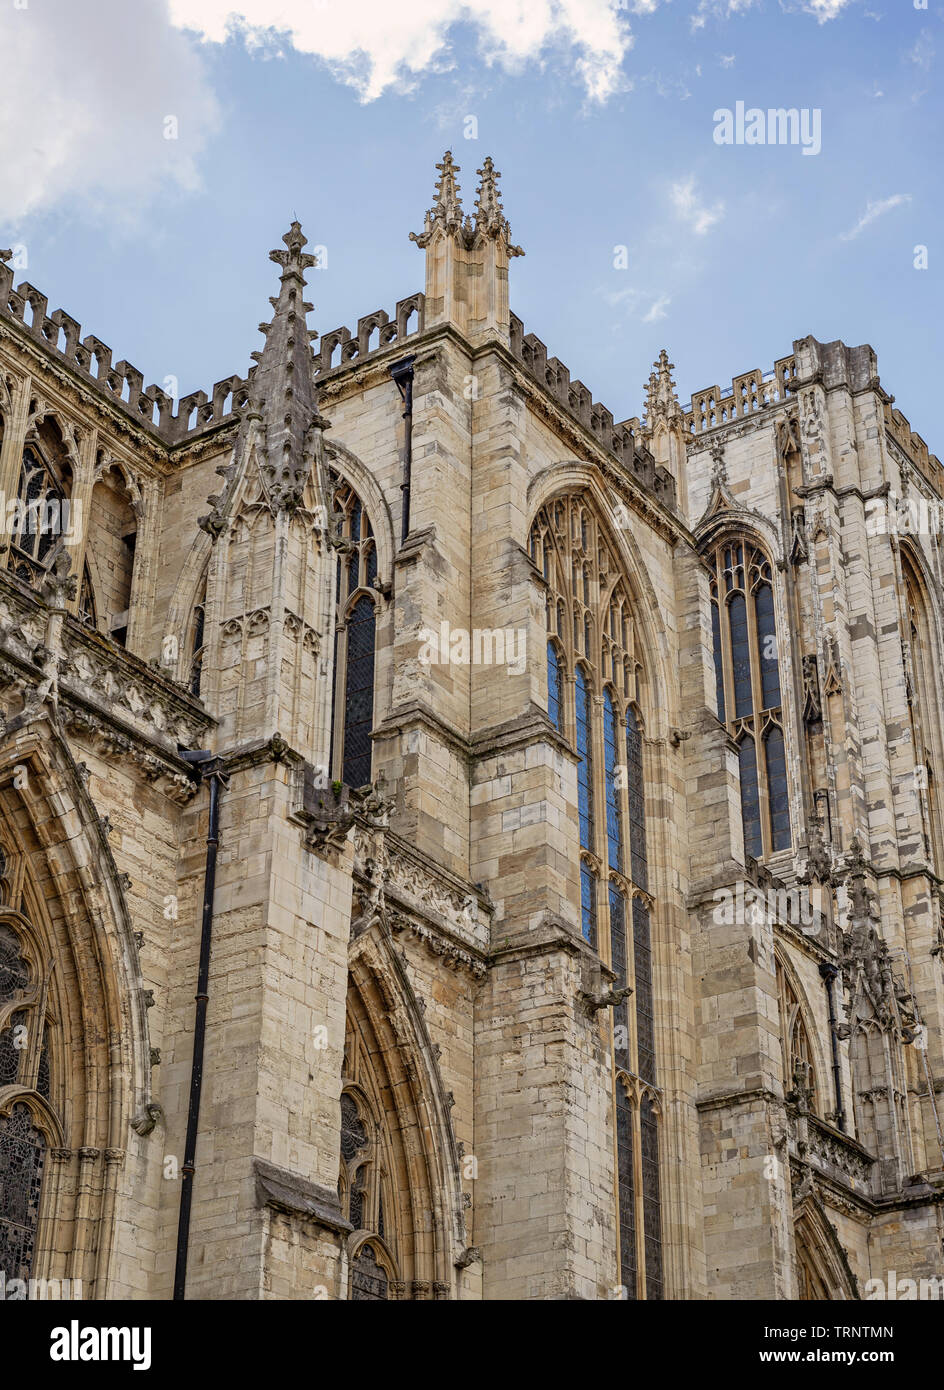 A section of York Minster with its medieval gothic architecture and central tower.  A cloudy sky is above. - Stock Image